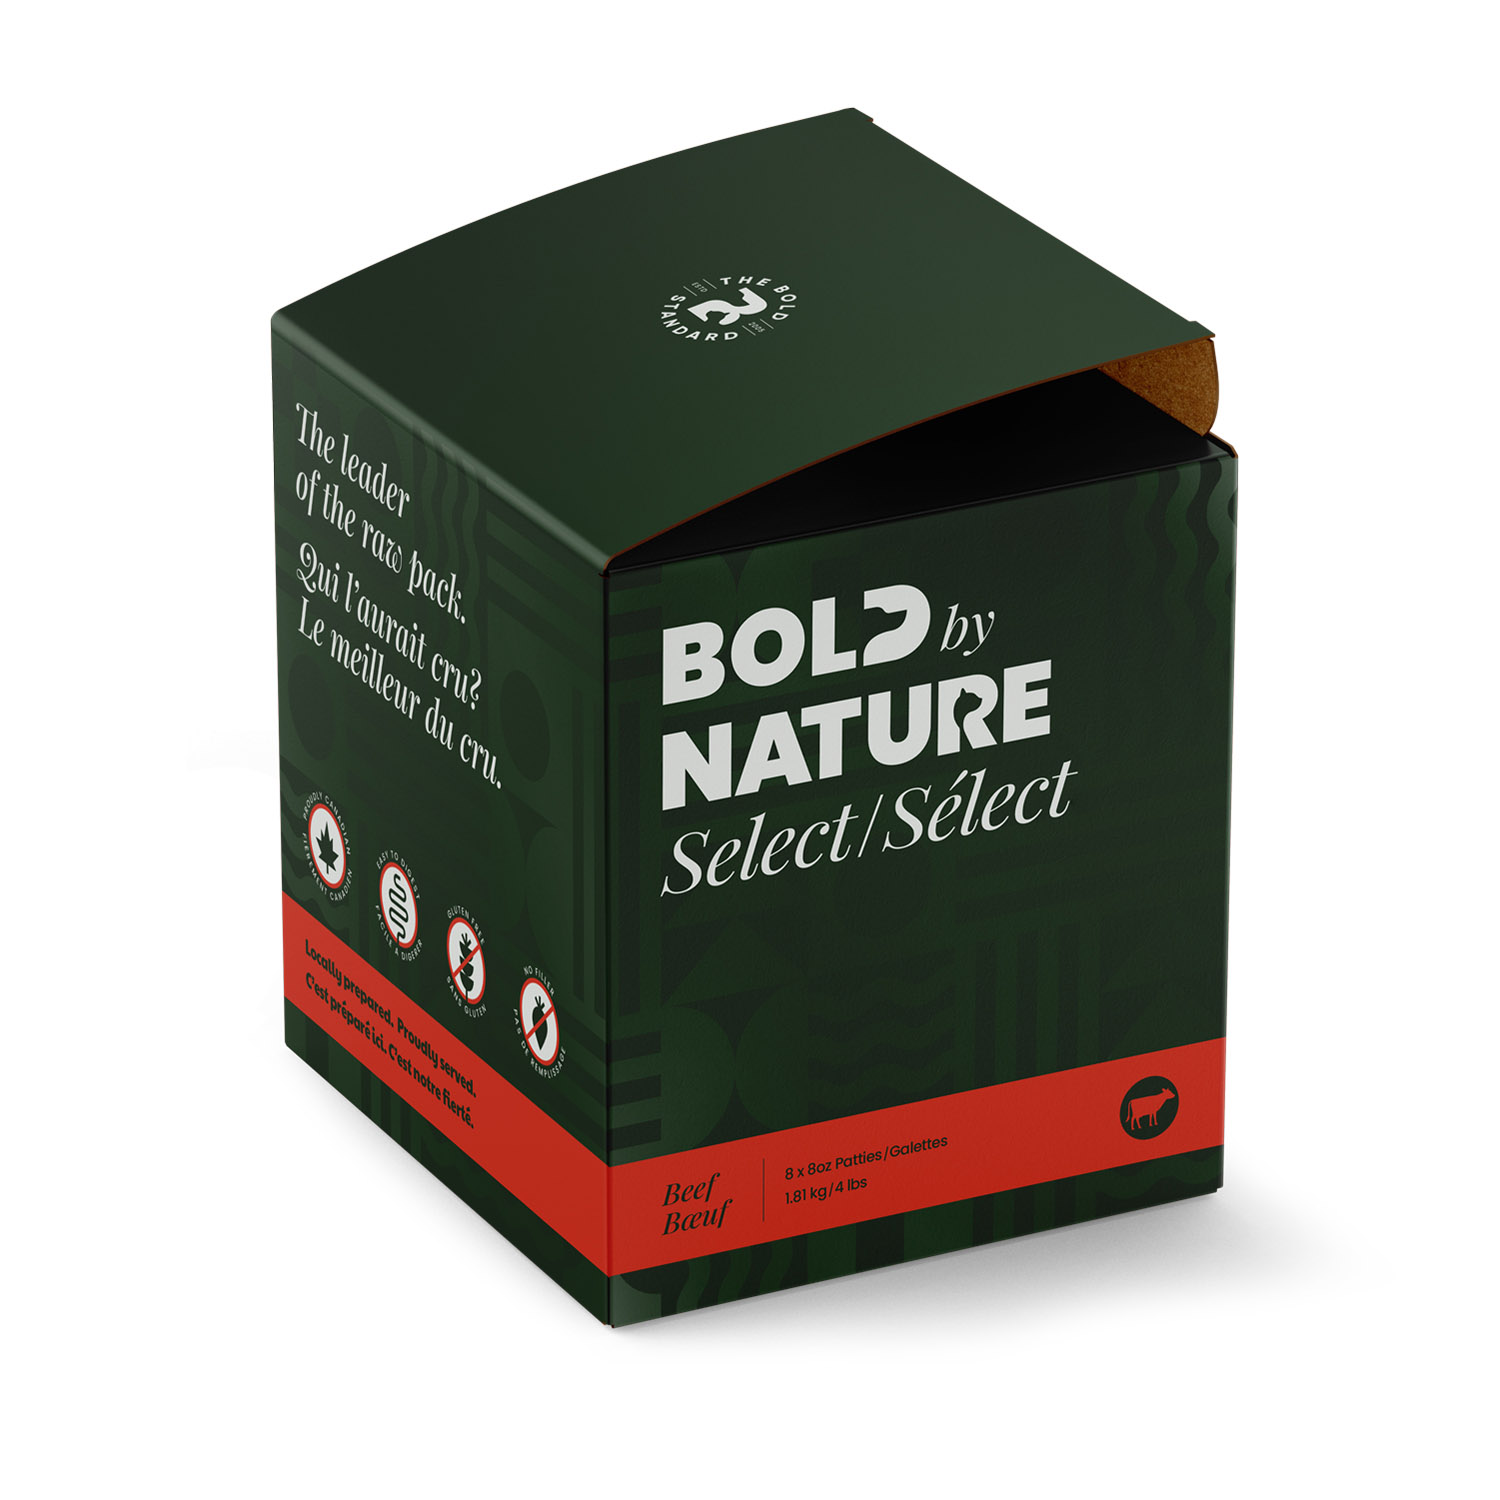 Bold by Nature Raw Beef Select Patties Image